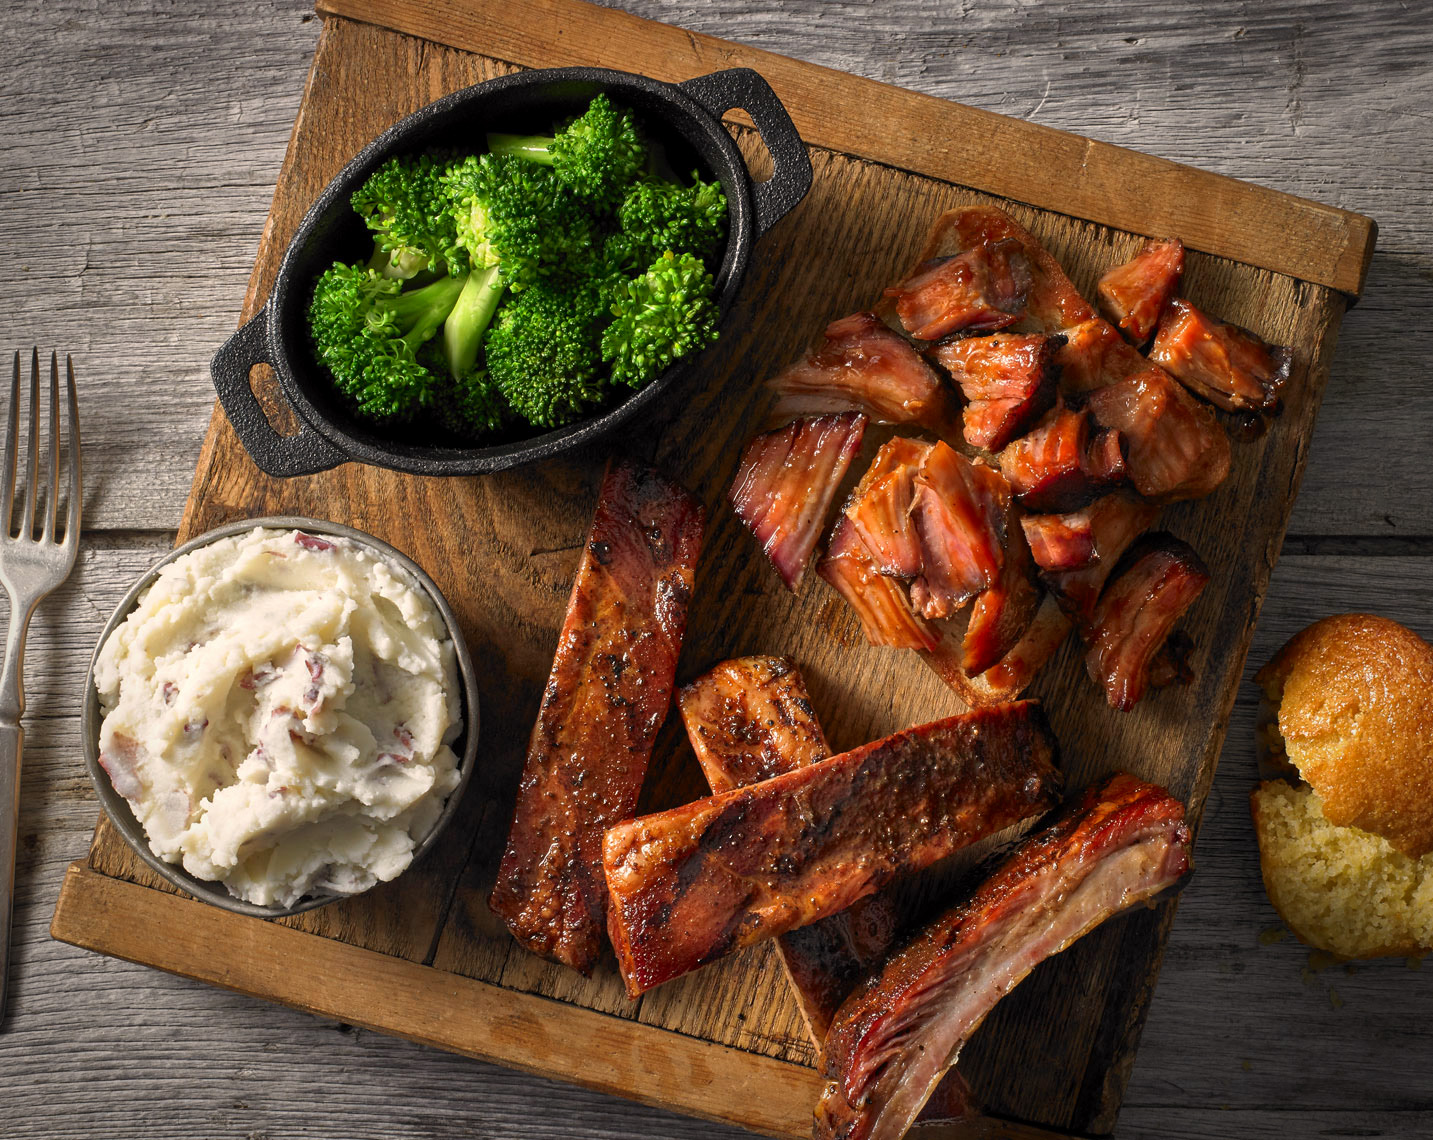 Ribs and cut ribs/mashed potatoes/broccoli/cornbread/food photography